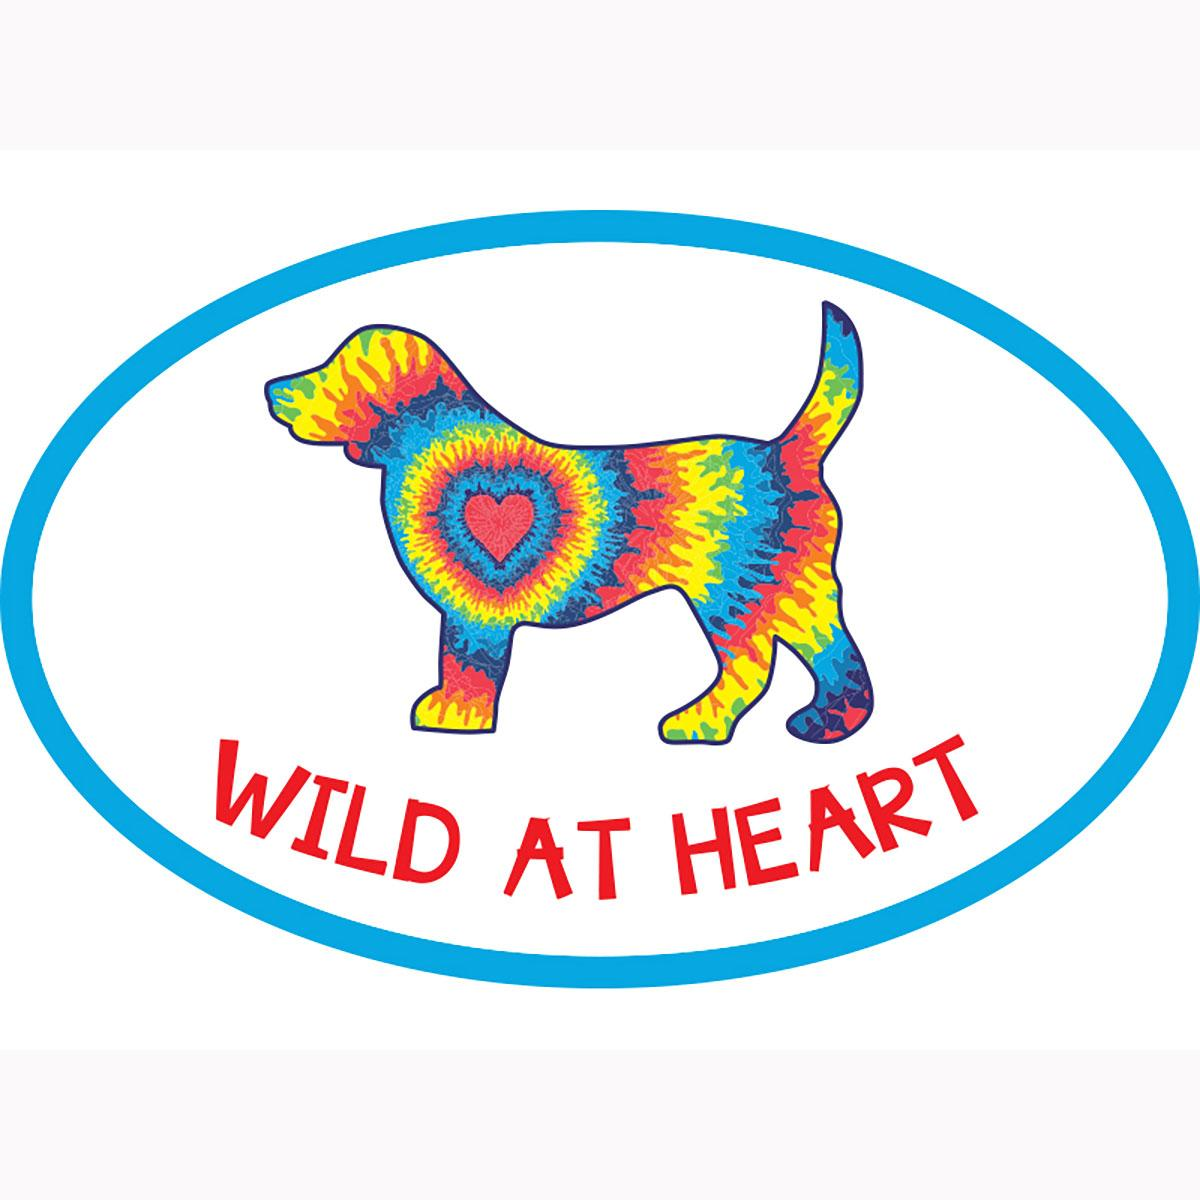 Wild at Heart Oval Magnet by Dog Speak